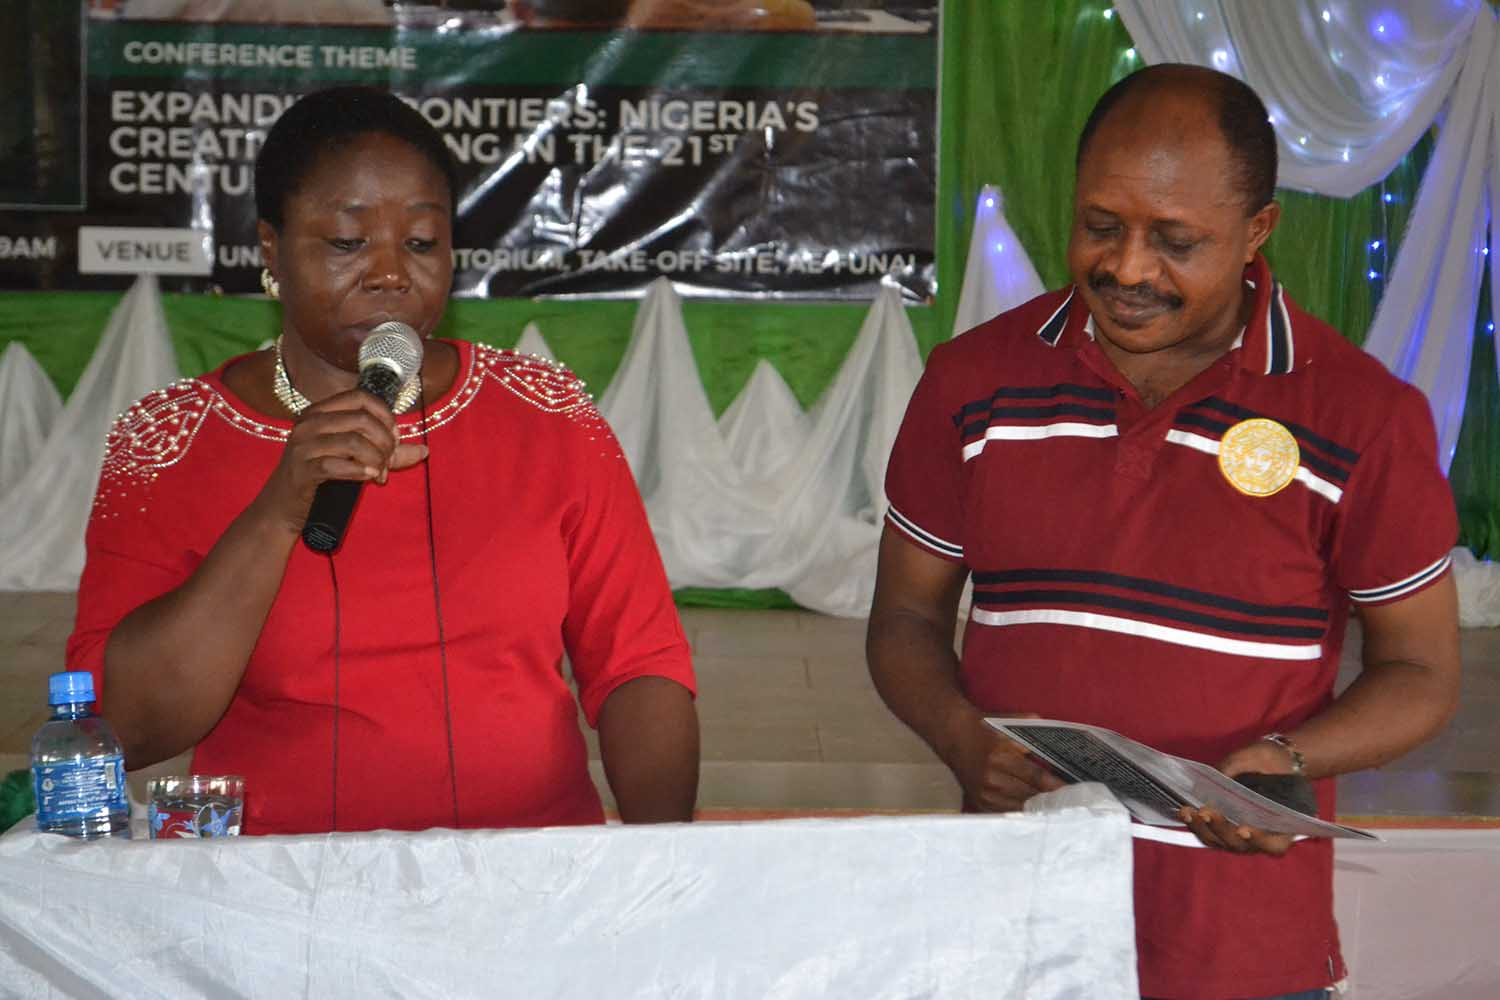 Prof G.M.T Emezue and Dr John Otu, acting as facilitators during the Workshops